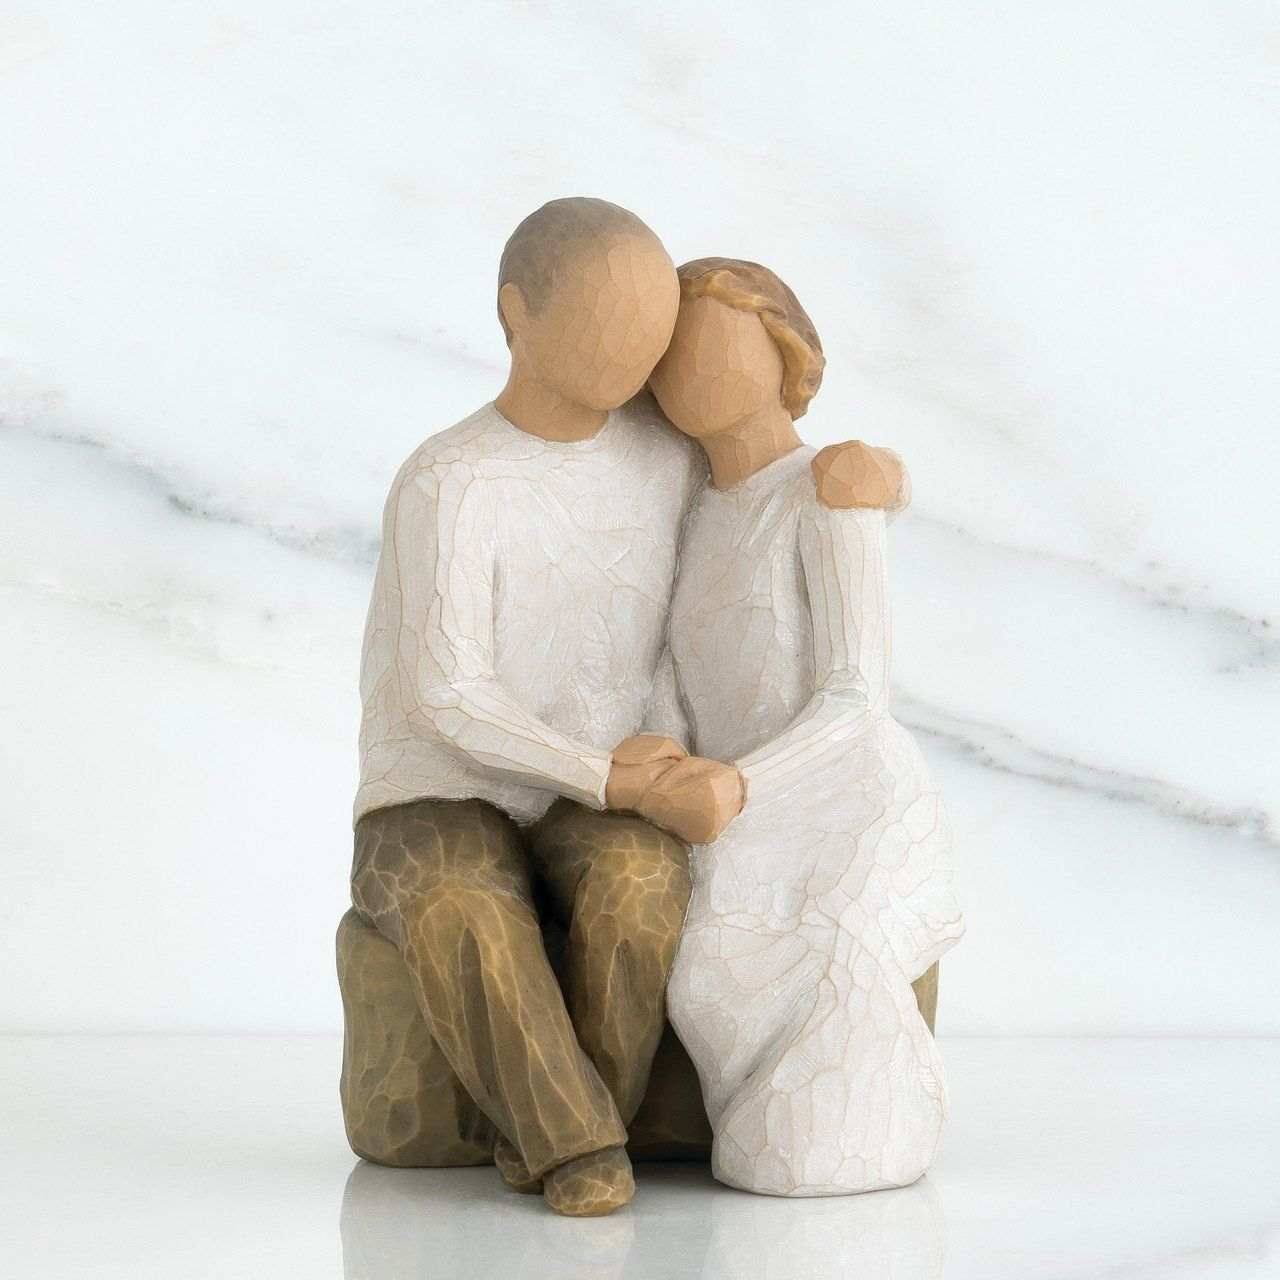 """A wedding, anniversary or Valentine's Day gift that expresses love and caring. Works well in Family Groupings. Willow Tree is a reminder of someone we want to keep close, or a memory we want to touch. Hand-carved figures reveal their expression through body gestures only… a tilt of the head, placement of the hands, a turn of the body. Each piece is designed to be open to interpretation from the viewer. """"Willow Tree isn't so much about the tangible piece. It represents an emotion, or it marks a m"""